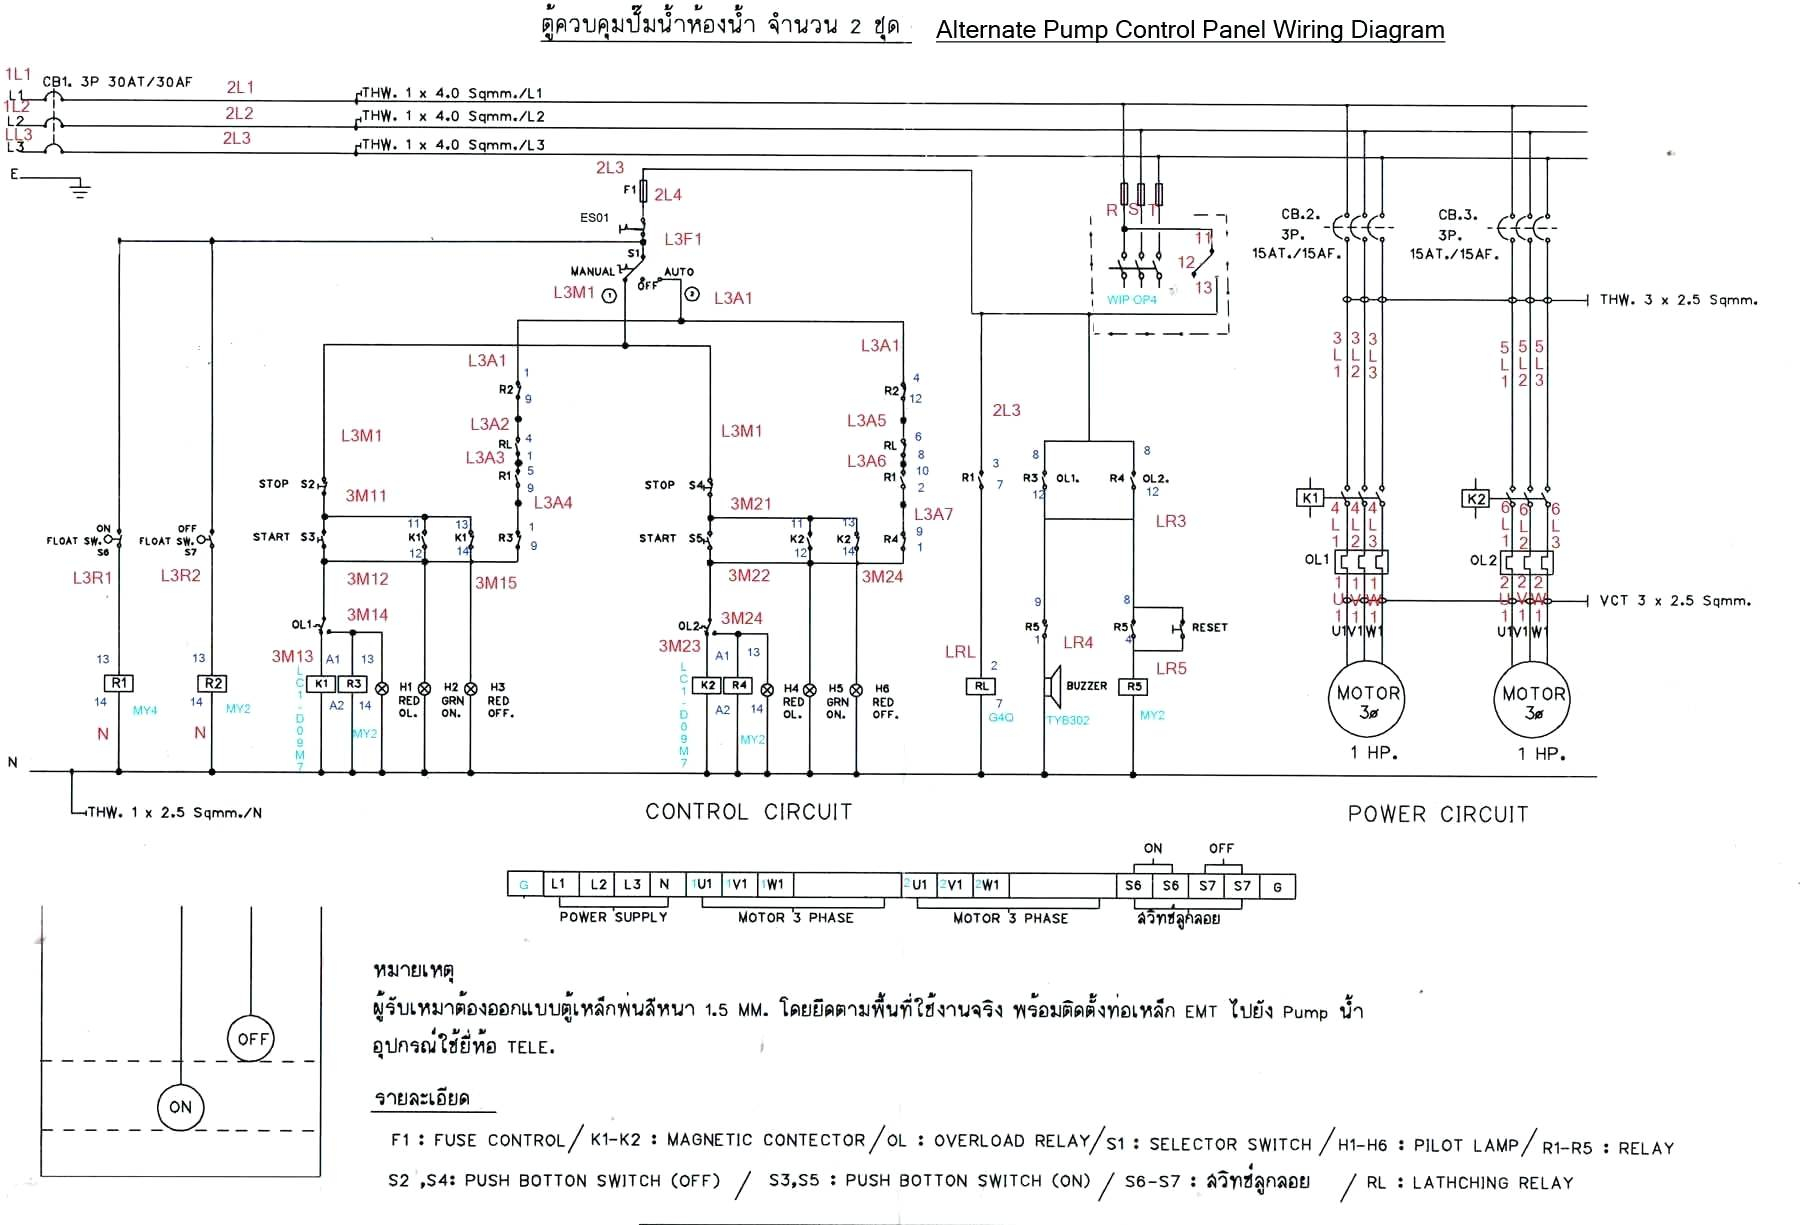 fire pump controller wiring diagram Collection-sel engine fire pump controller wiring diagram Best of Great Simplex Pump Wiring Diagrams Gallery Electrical 13-a